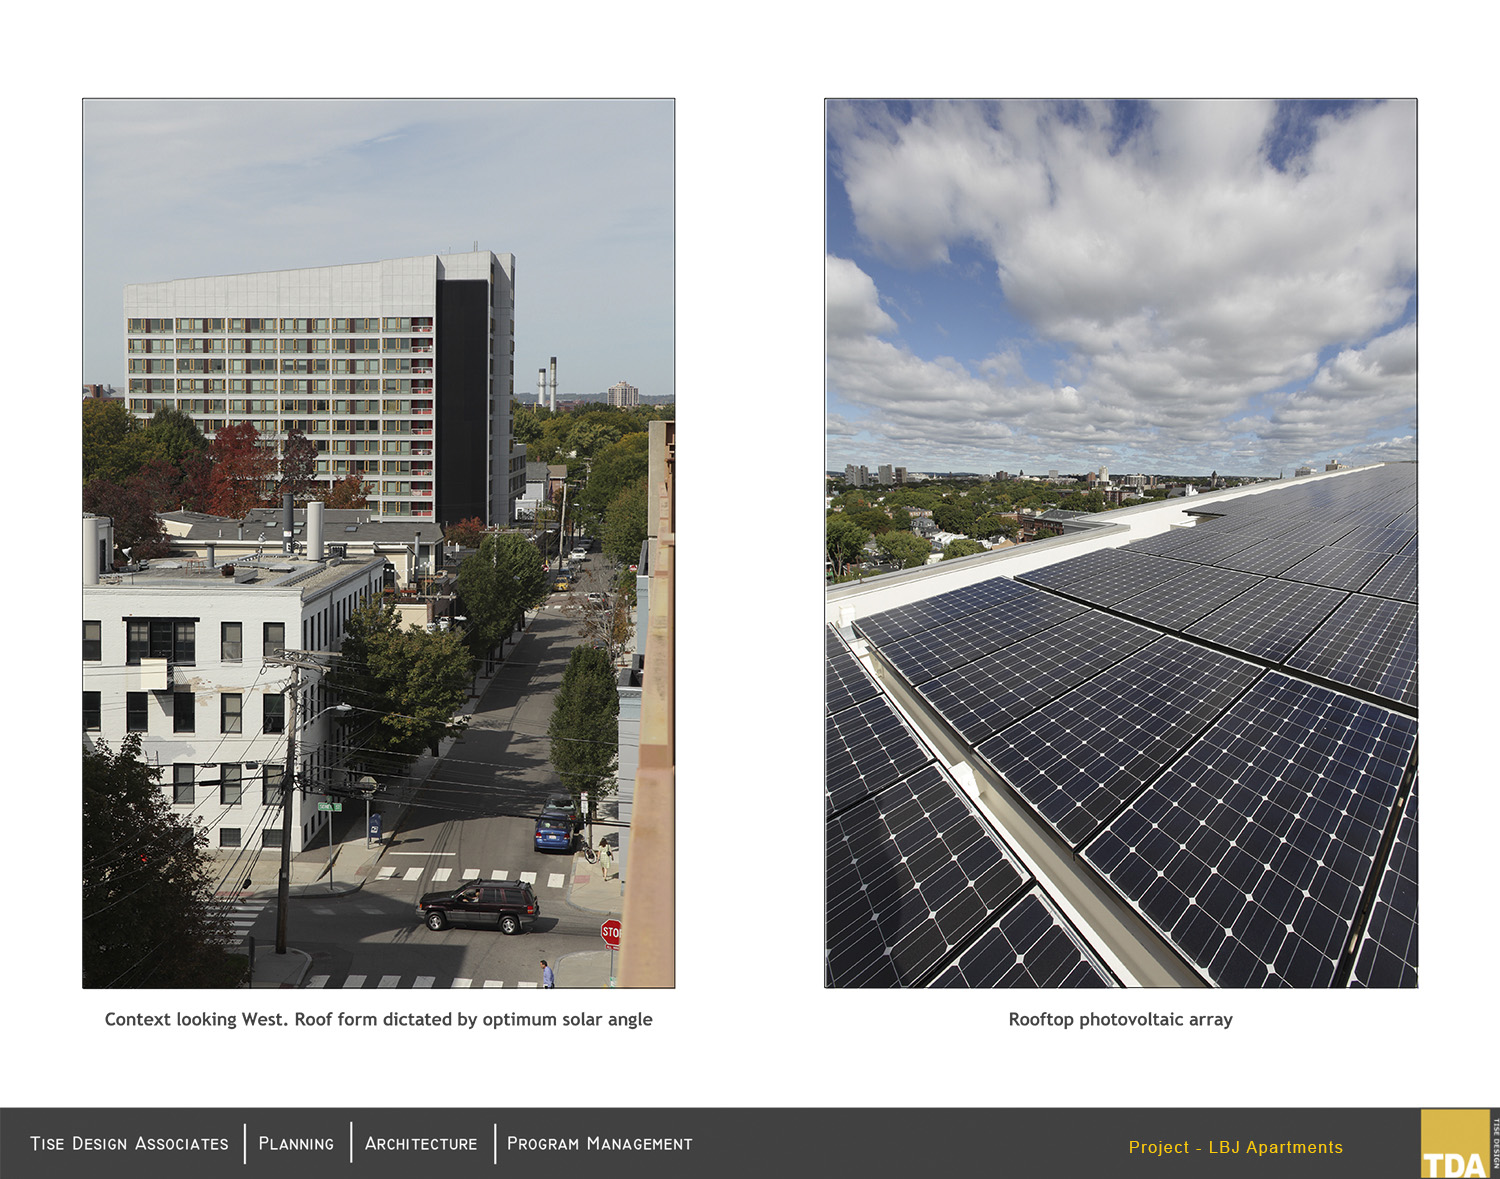 Contect looking west - roof form dictated by optimum solar angle. Rooftop photvoltaic array Jim Raycroft Photography